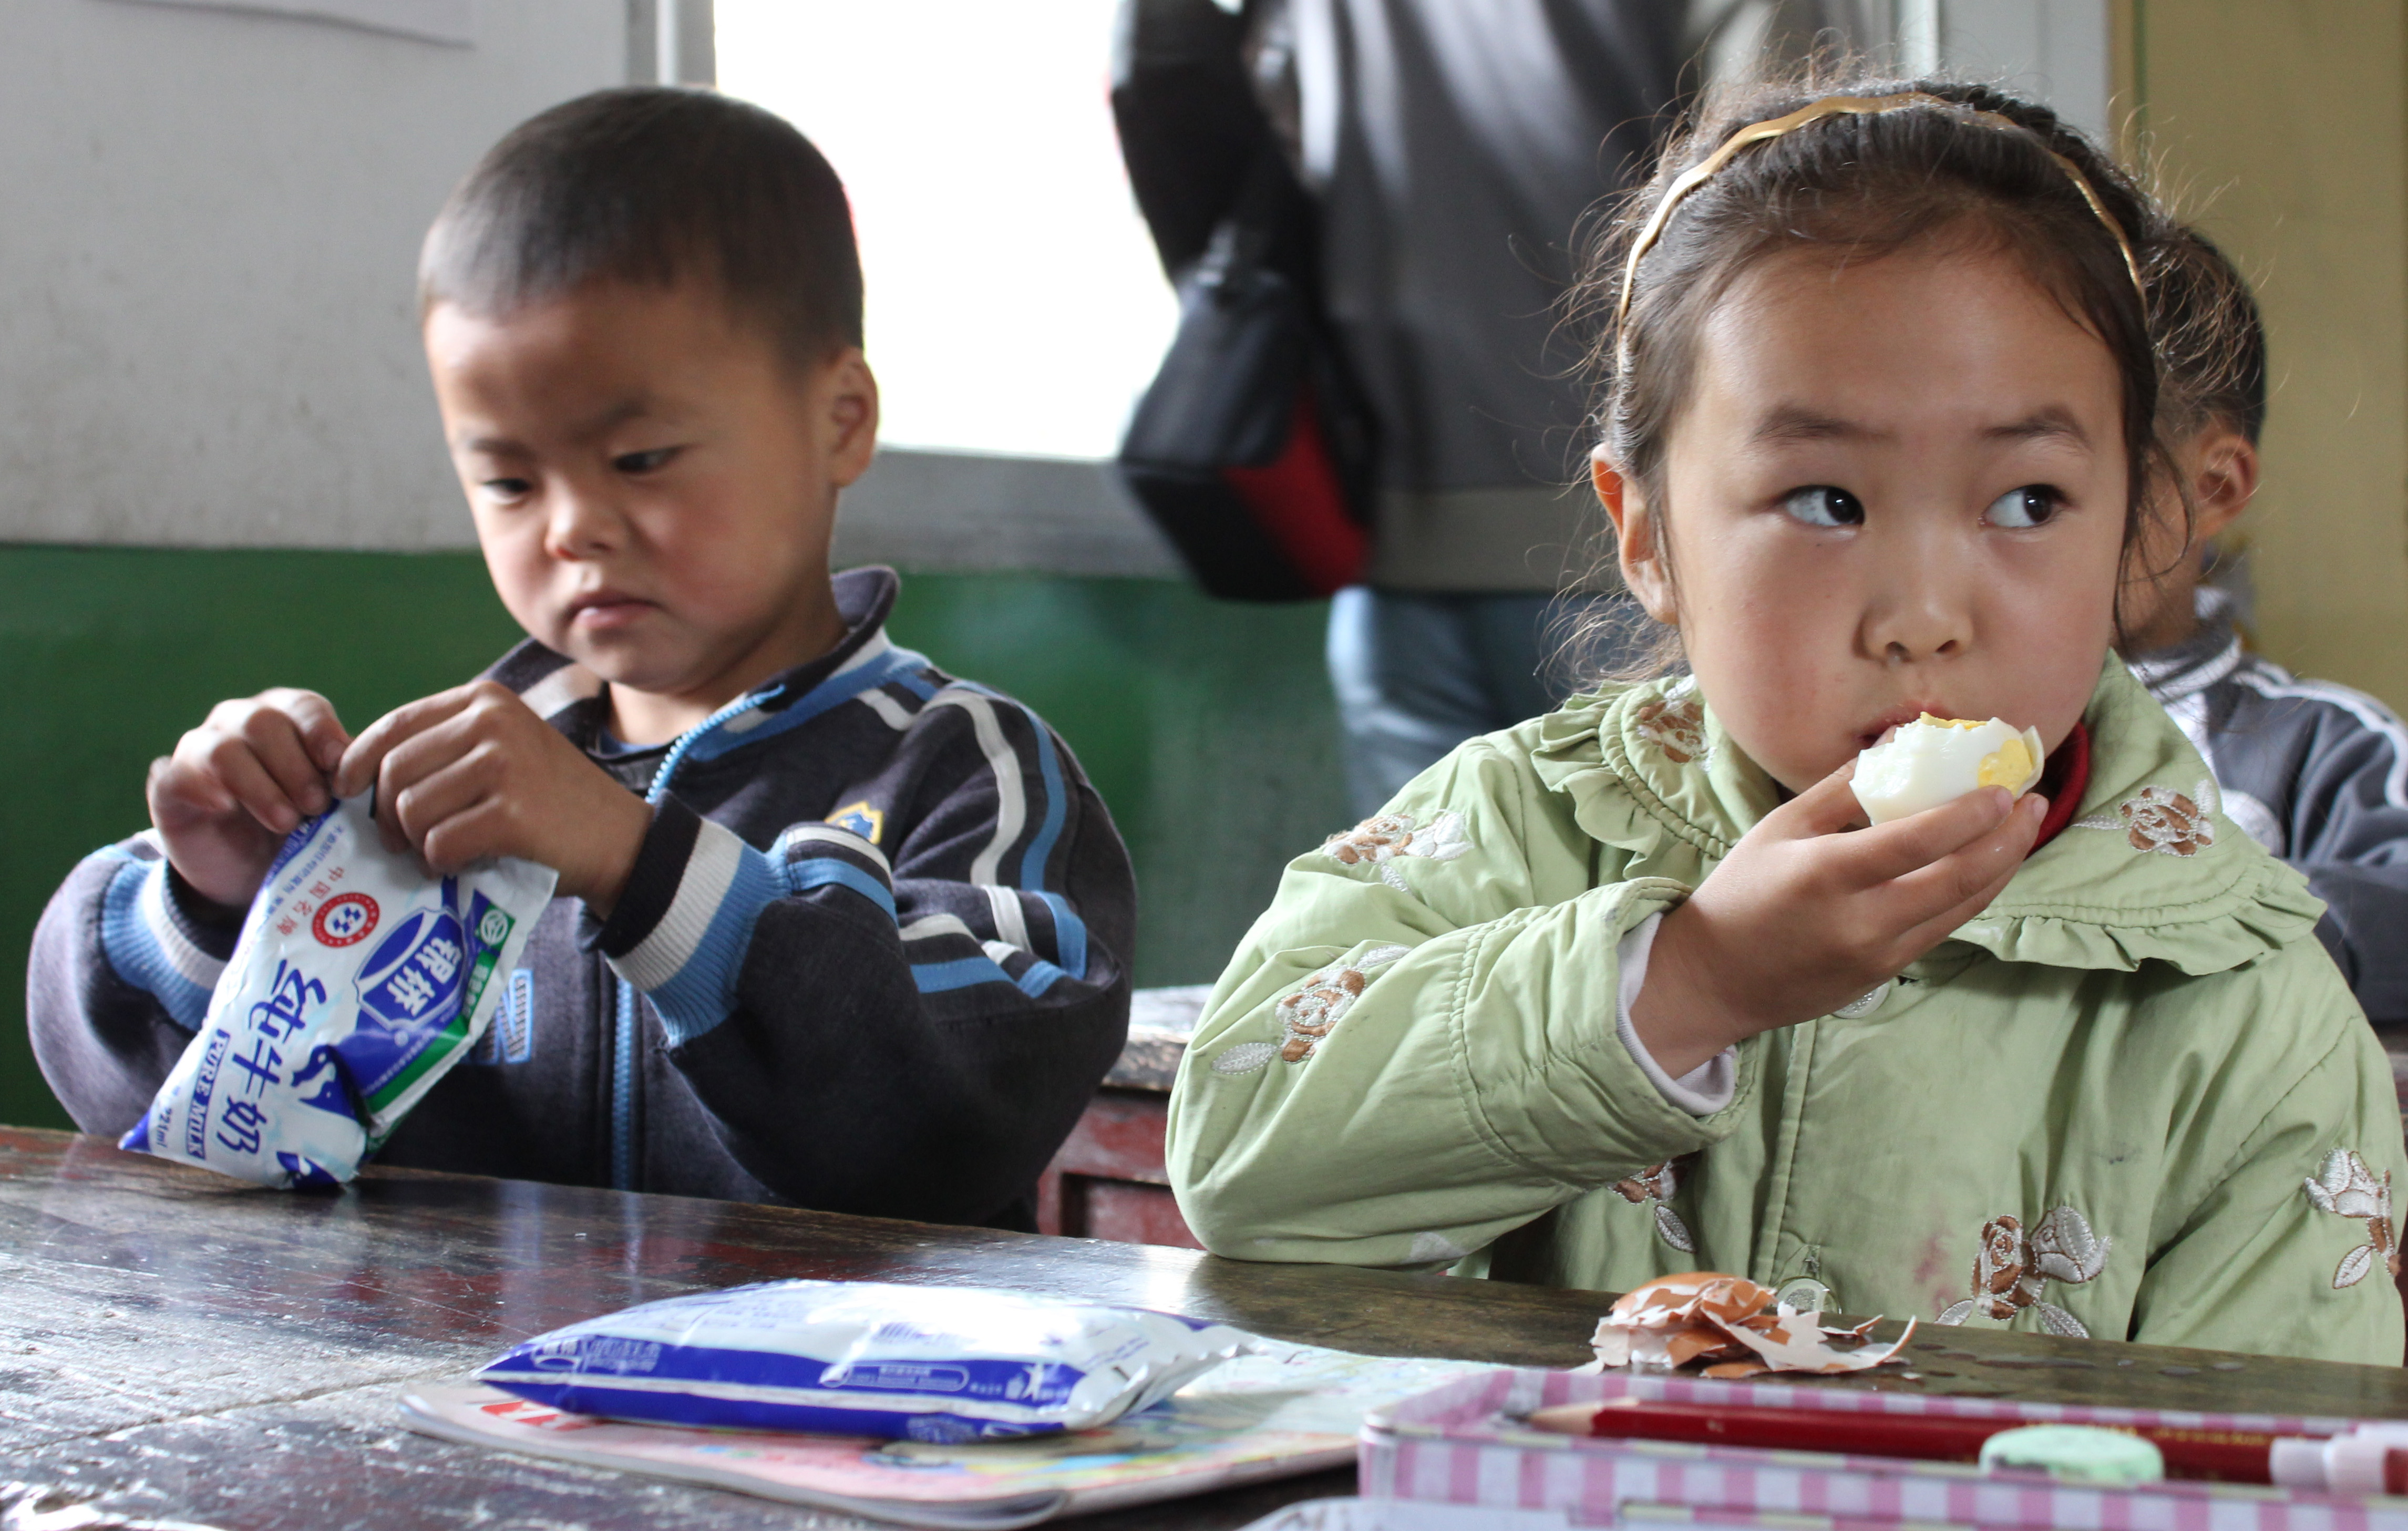 Young boy opening bag and girl eating egg